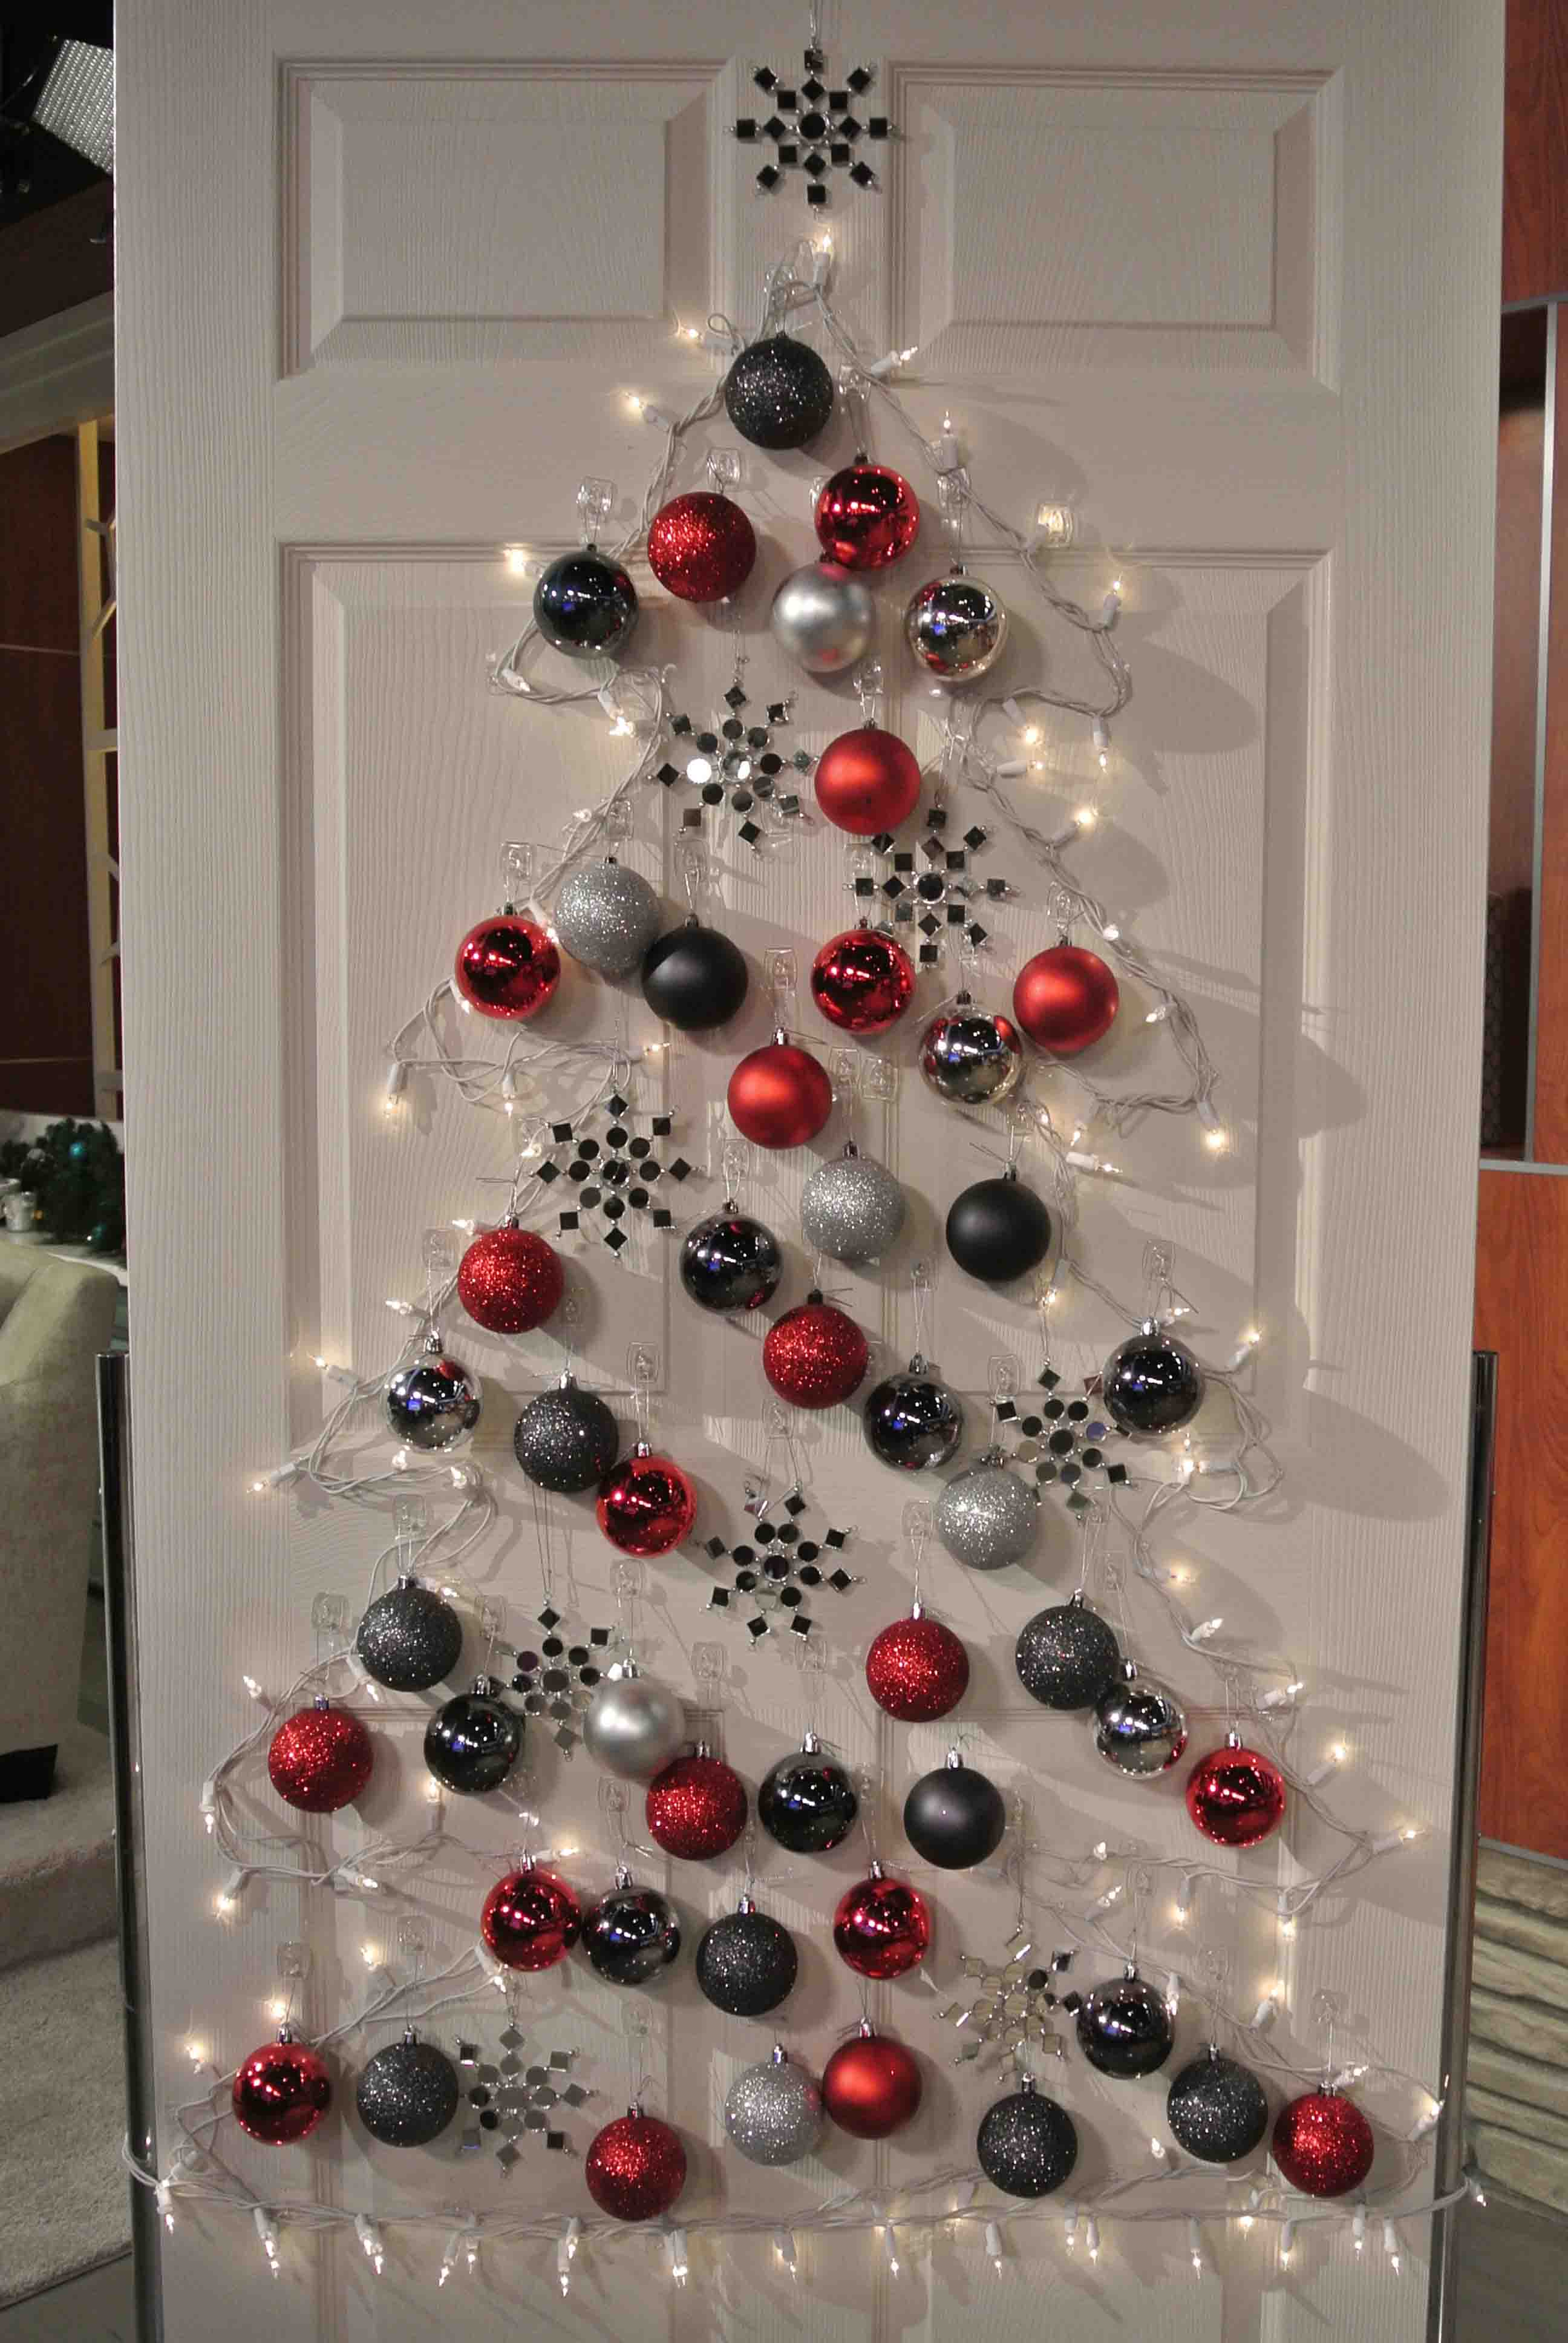 -Mesmerizing Door Creative Christmas Decor Ideas With Red White And Black Glossy Plastic Ball